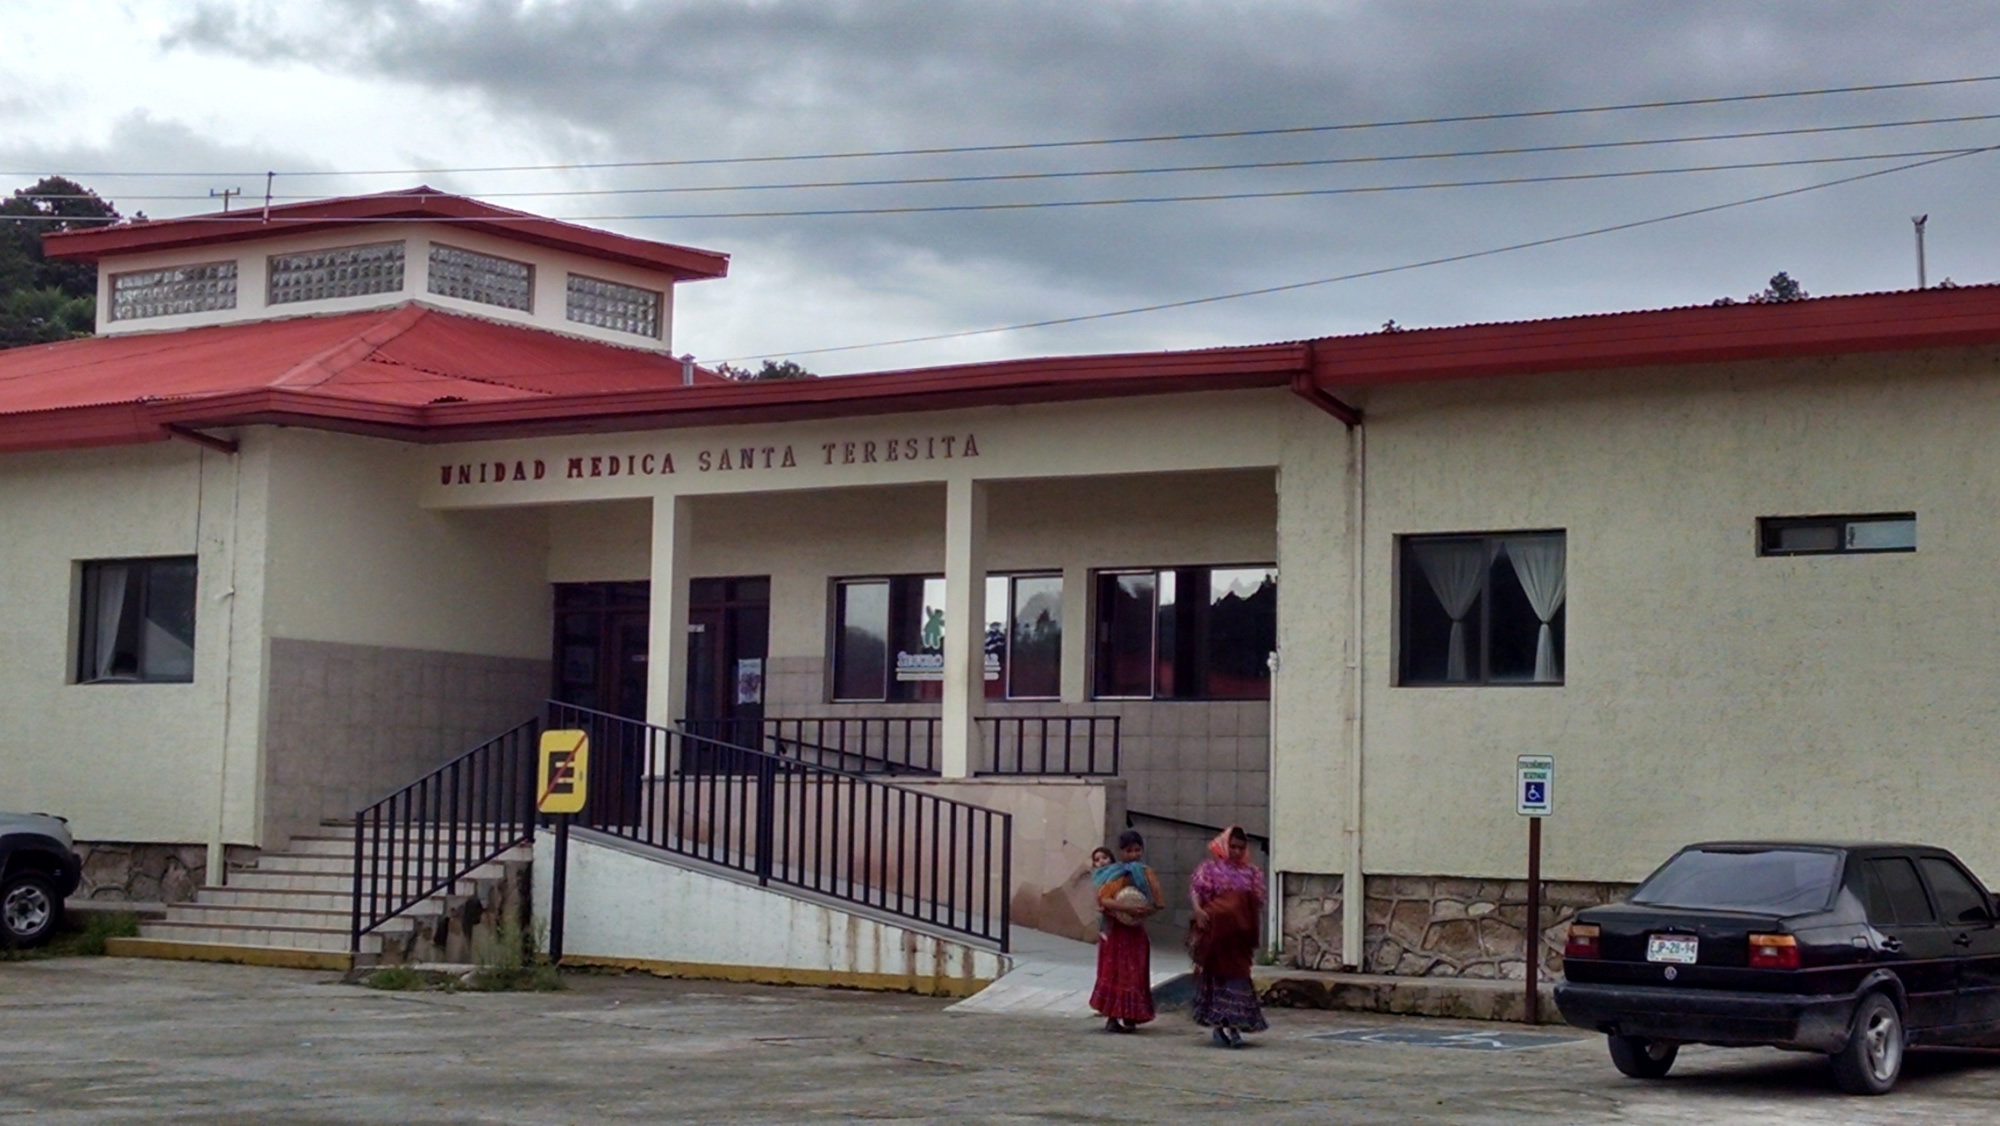 Tarahumara Children's Hospital